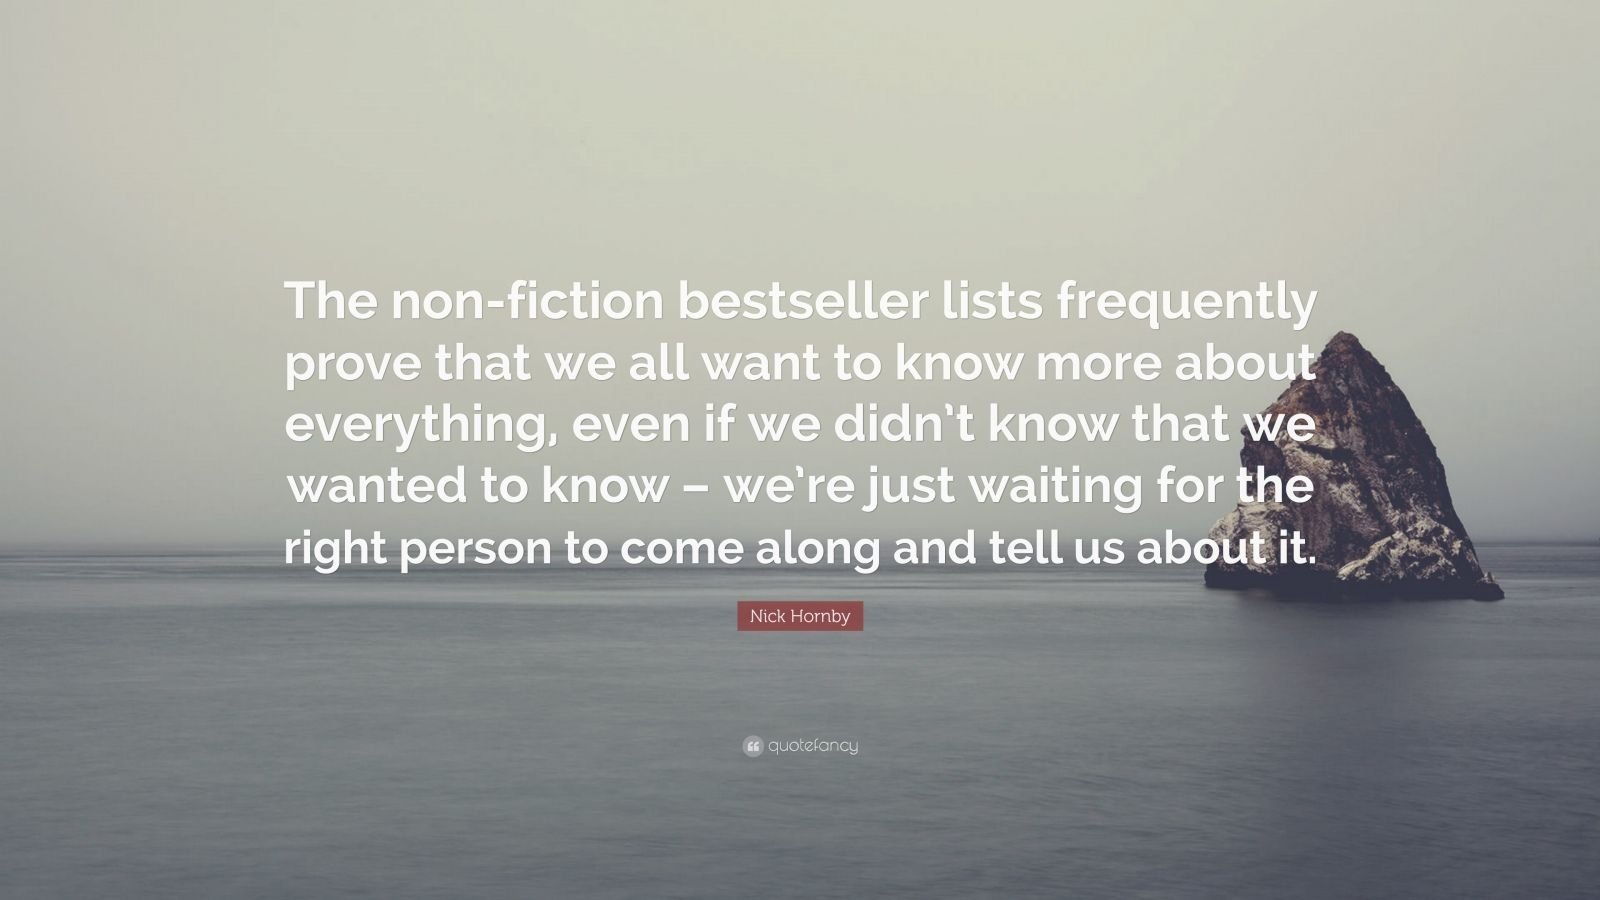 """Nick Hornby Quote: """"The non-fiction bestseller lists frequently prove that we all want to know more about everything, even if we didn't know that we wanted to know – we're just waiting for the right person to come along and tell us about it."""""""